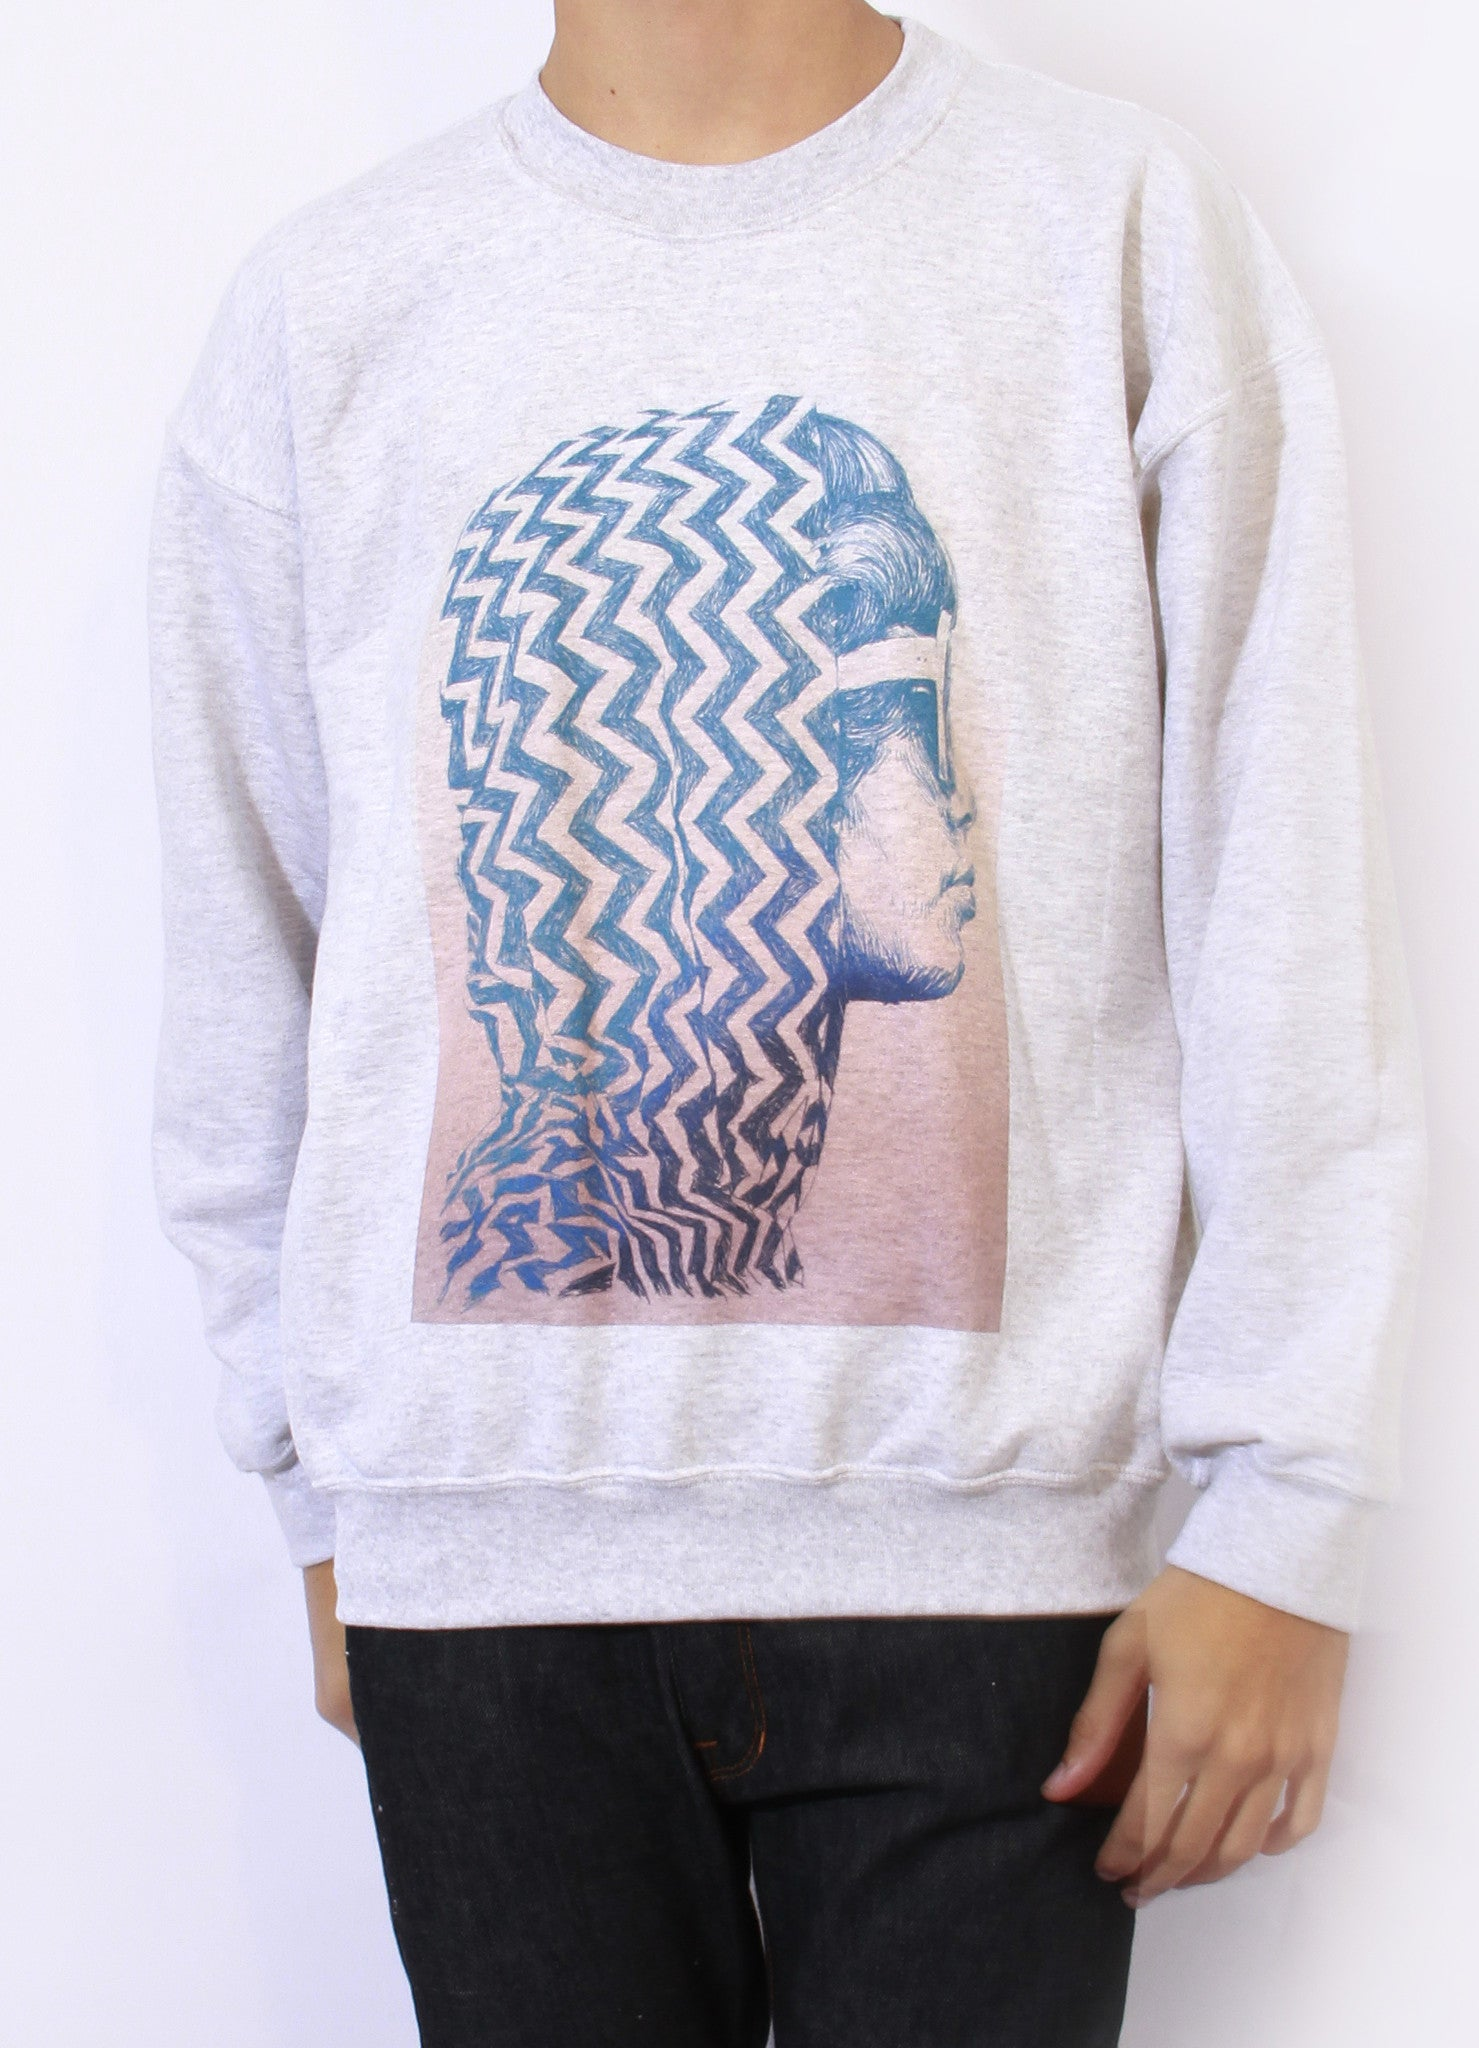 TH Gallery - California girl - Sweat-Sweat shirts-Atelier Amelot